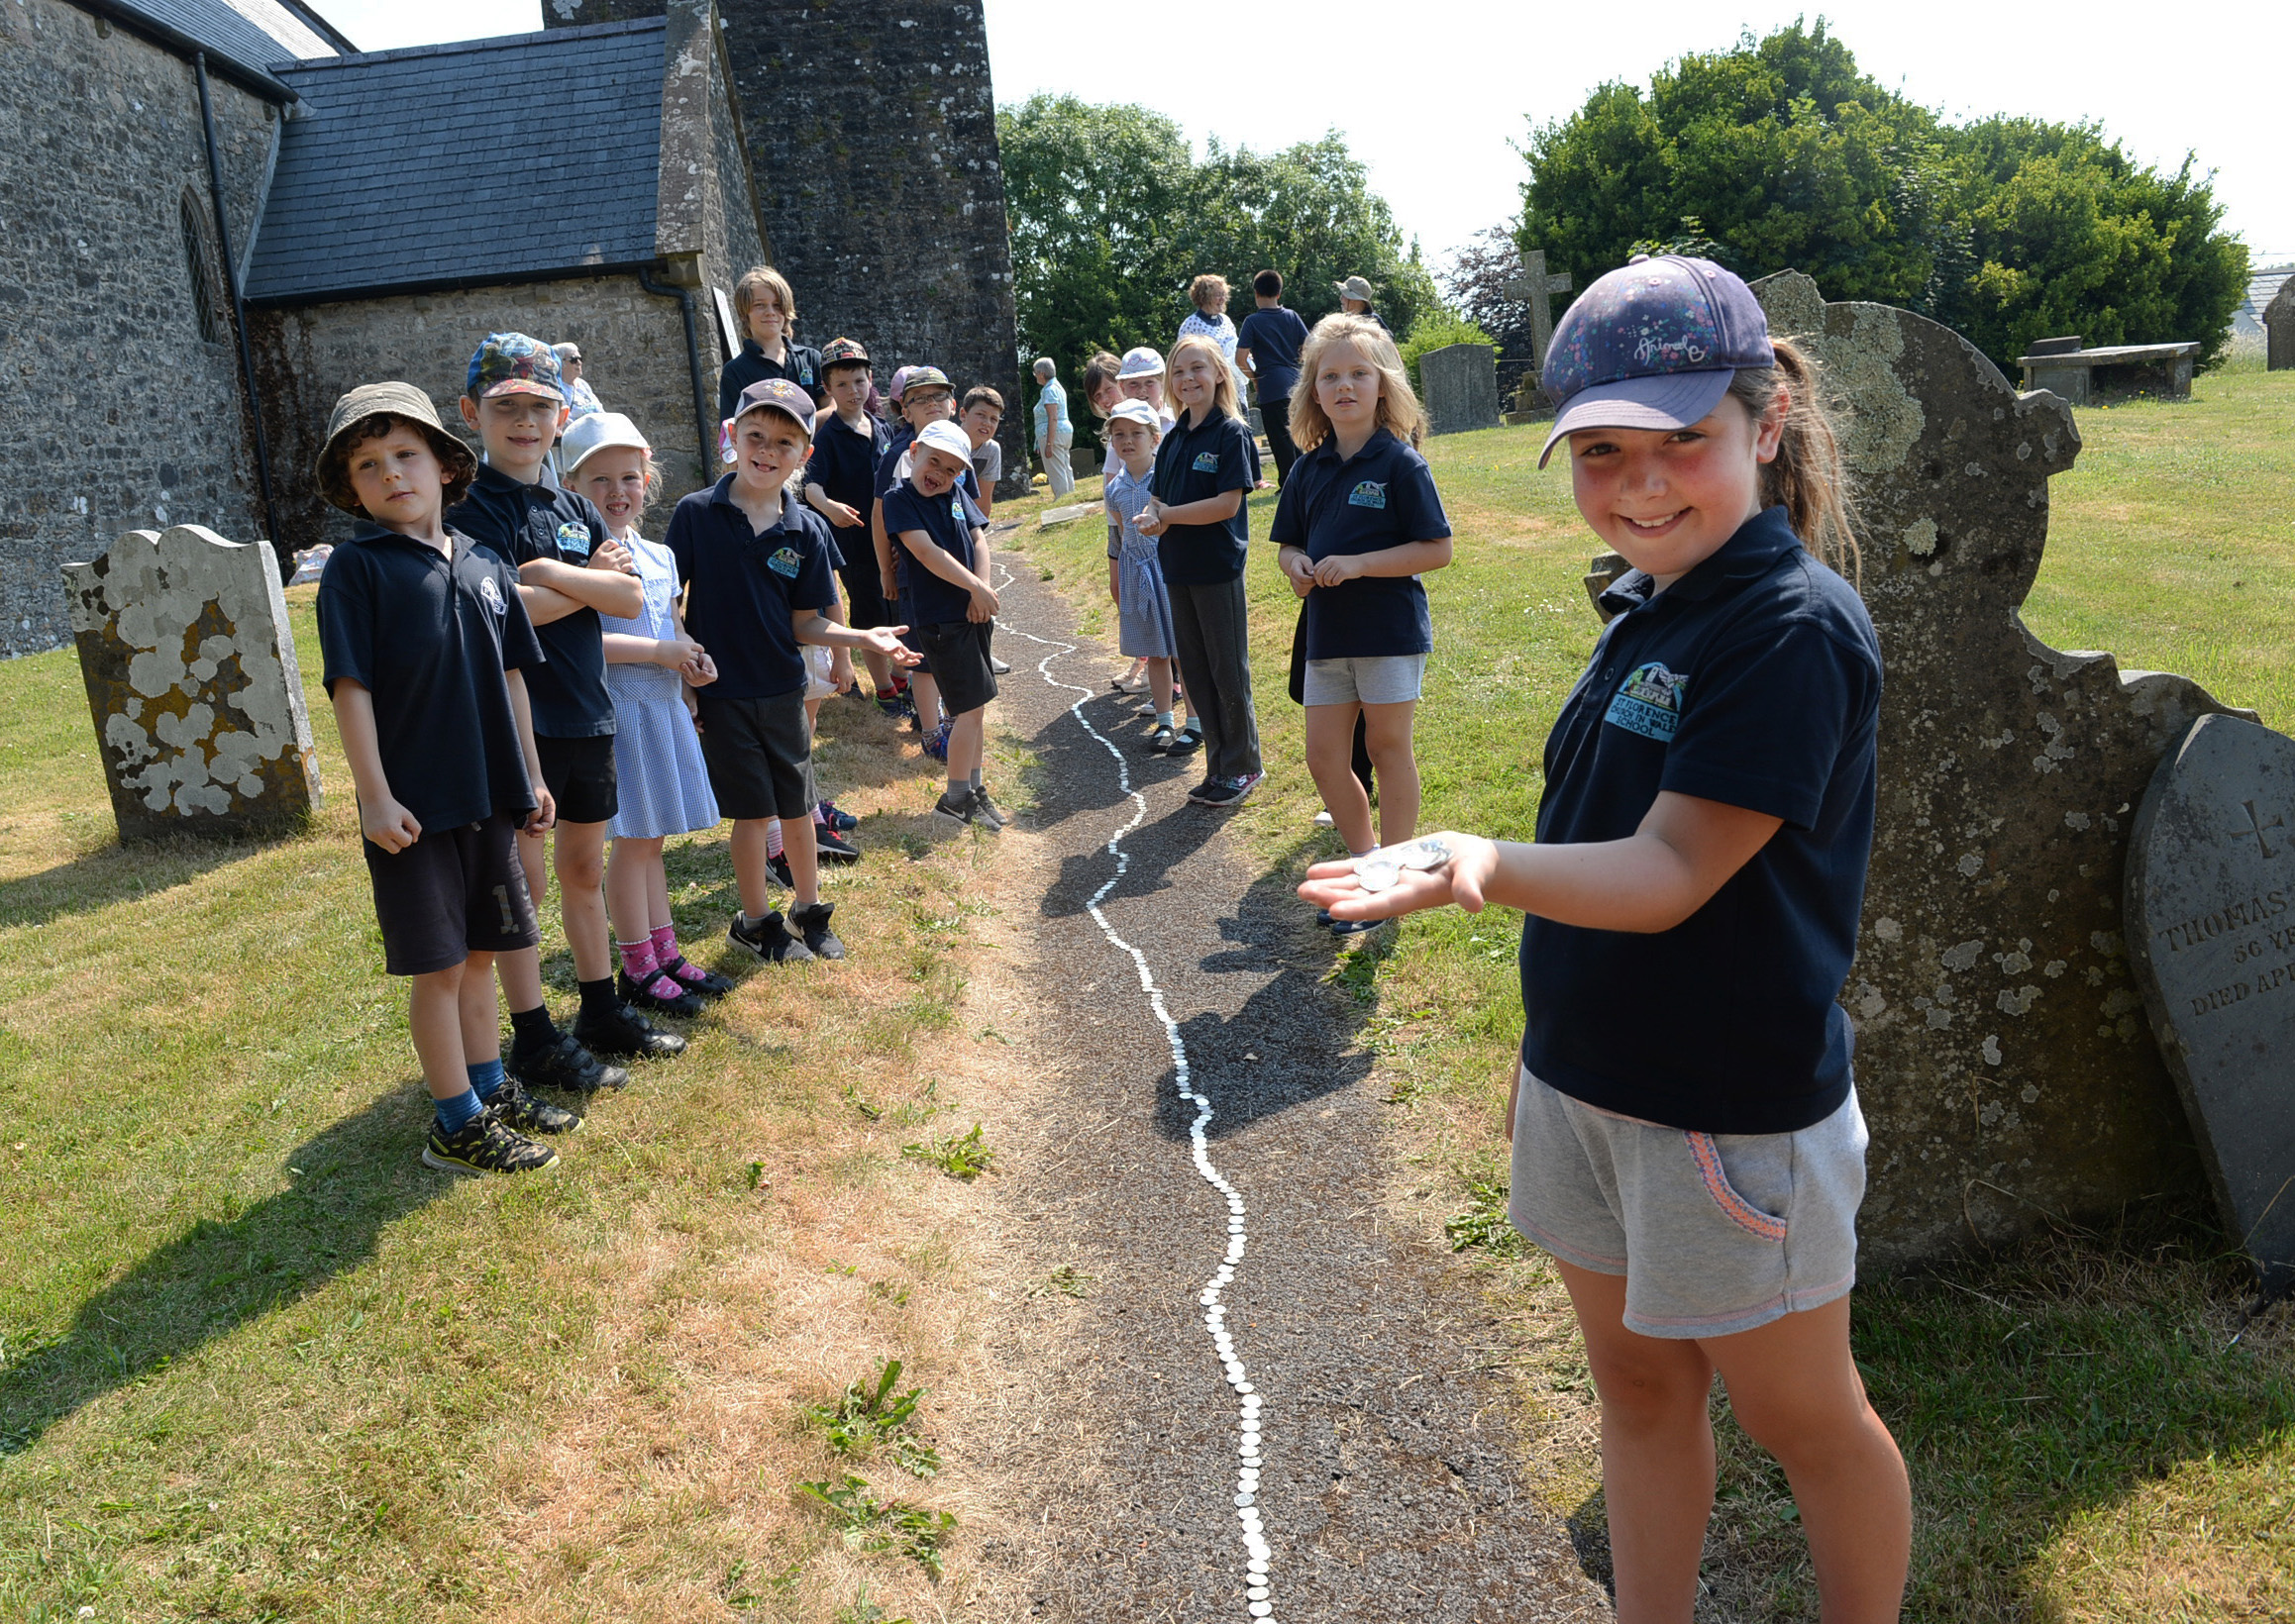 St Florence School's 10p trail added up to £190 worth of fundraising for the village church appeal.  PICTURE: Gareth Davies Photography.